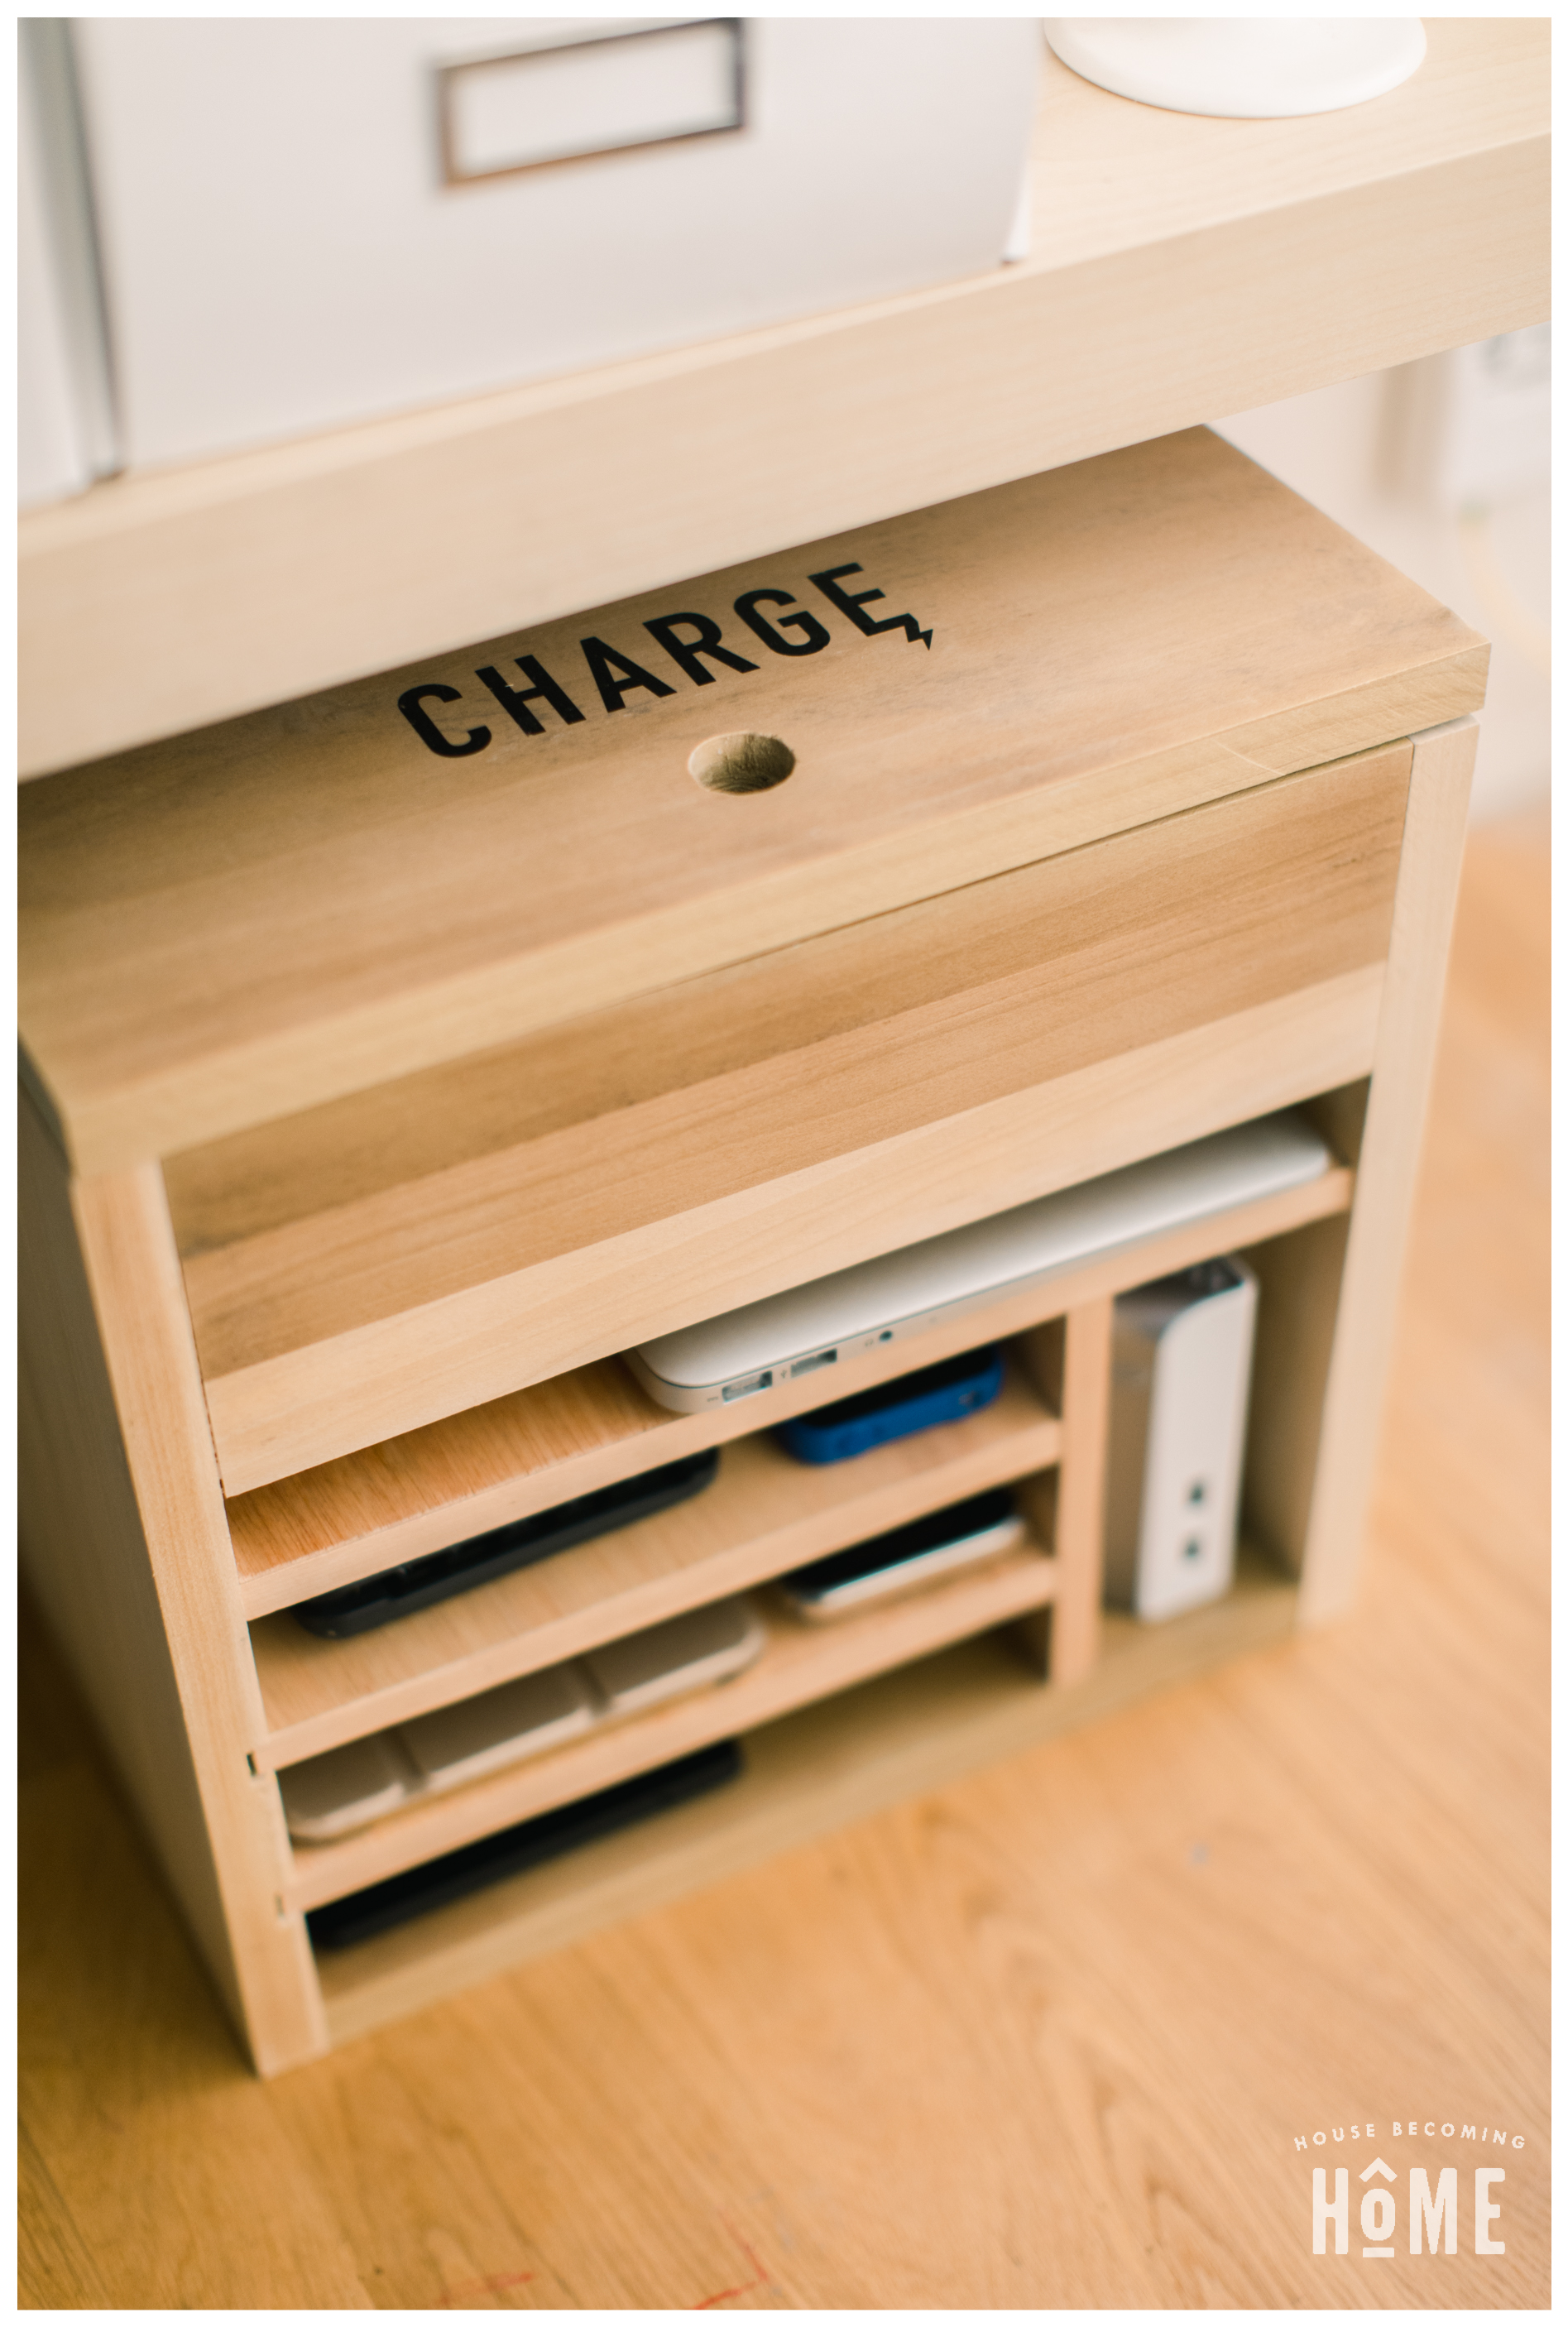 DIY Charging Station with Power Strip and USB Hub